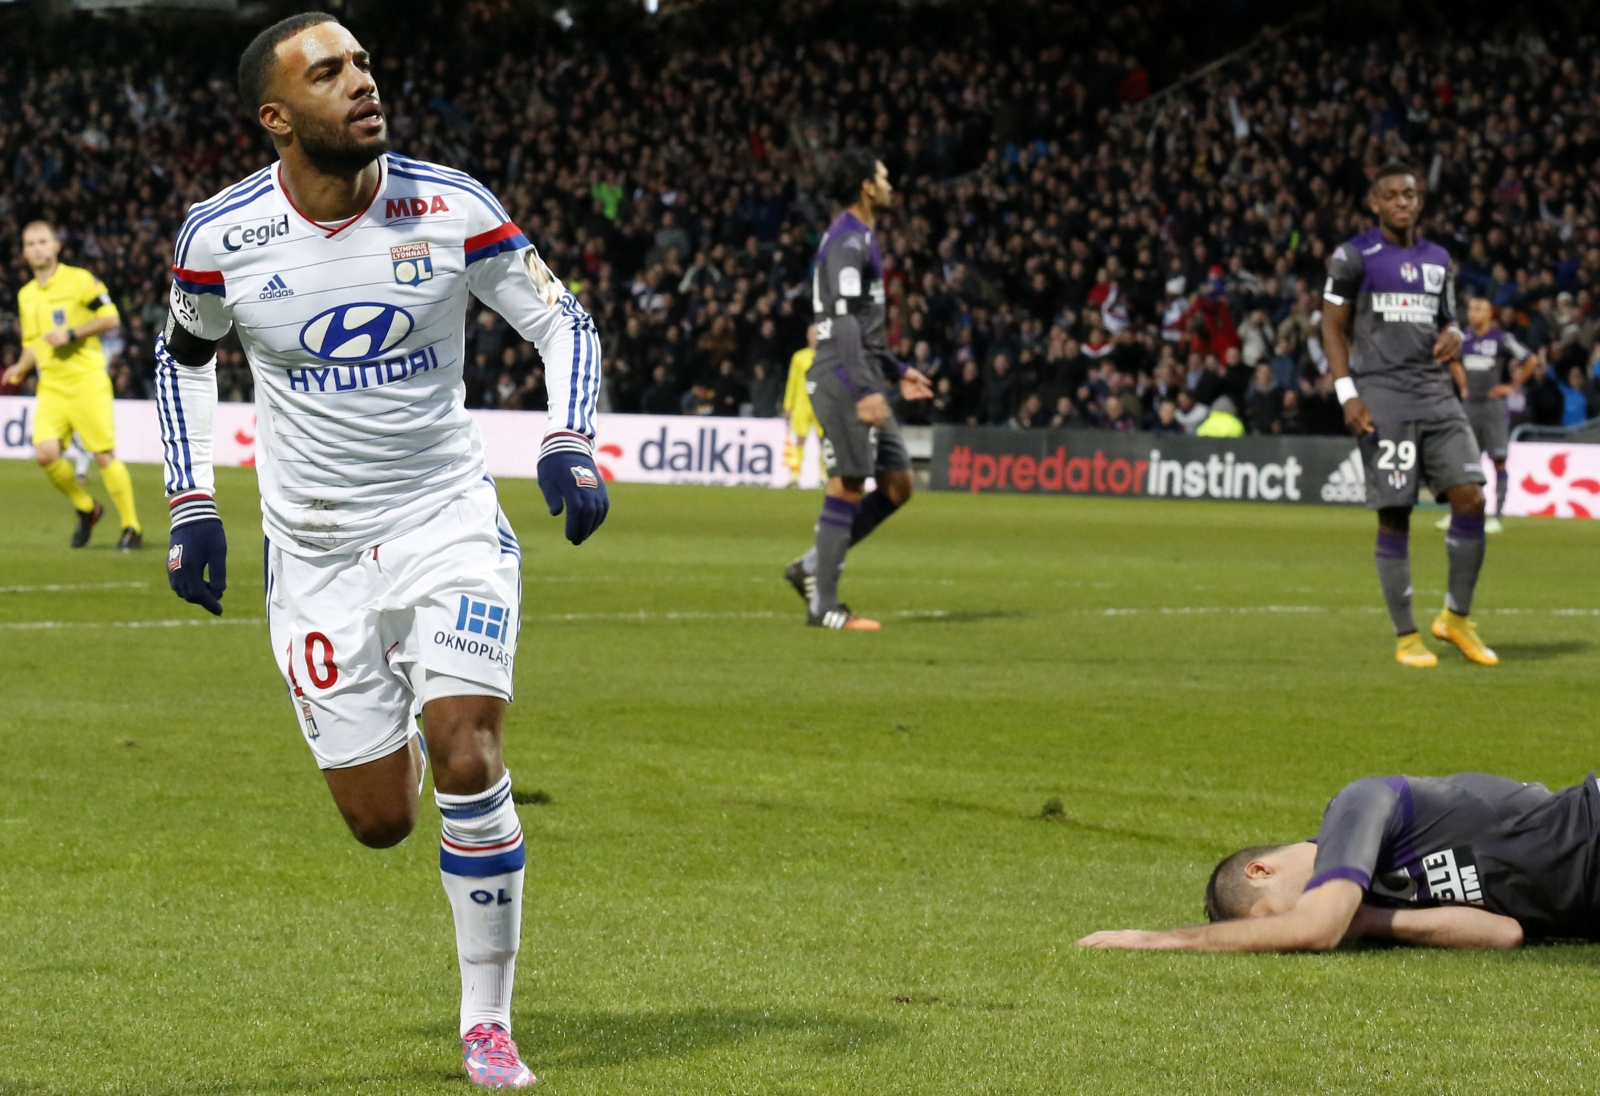 The heir to Thierry Henry? analysing the latest Arsenal target Alexandre Lacazette